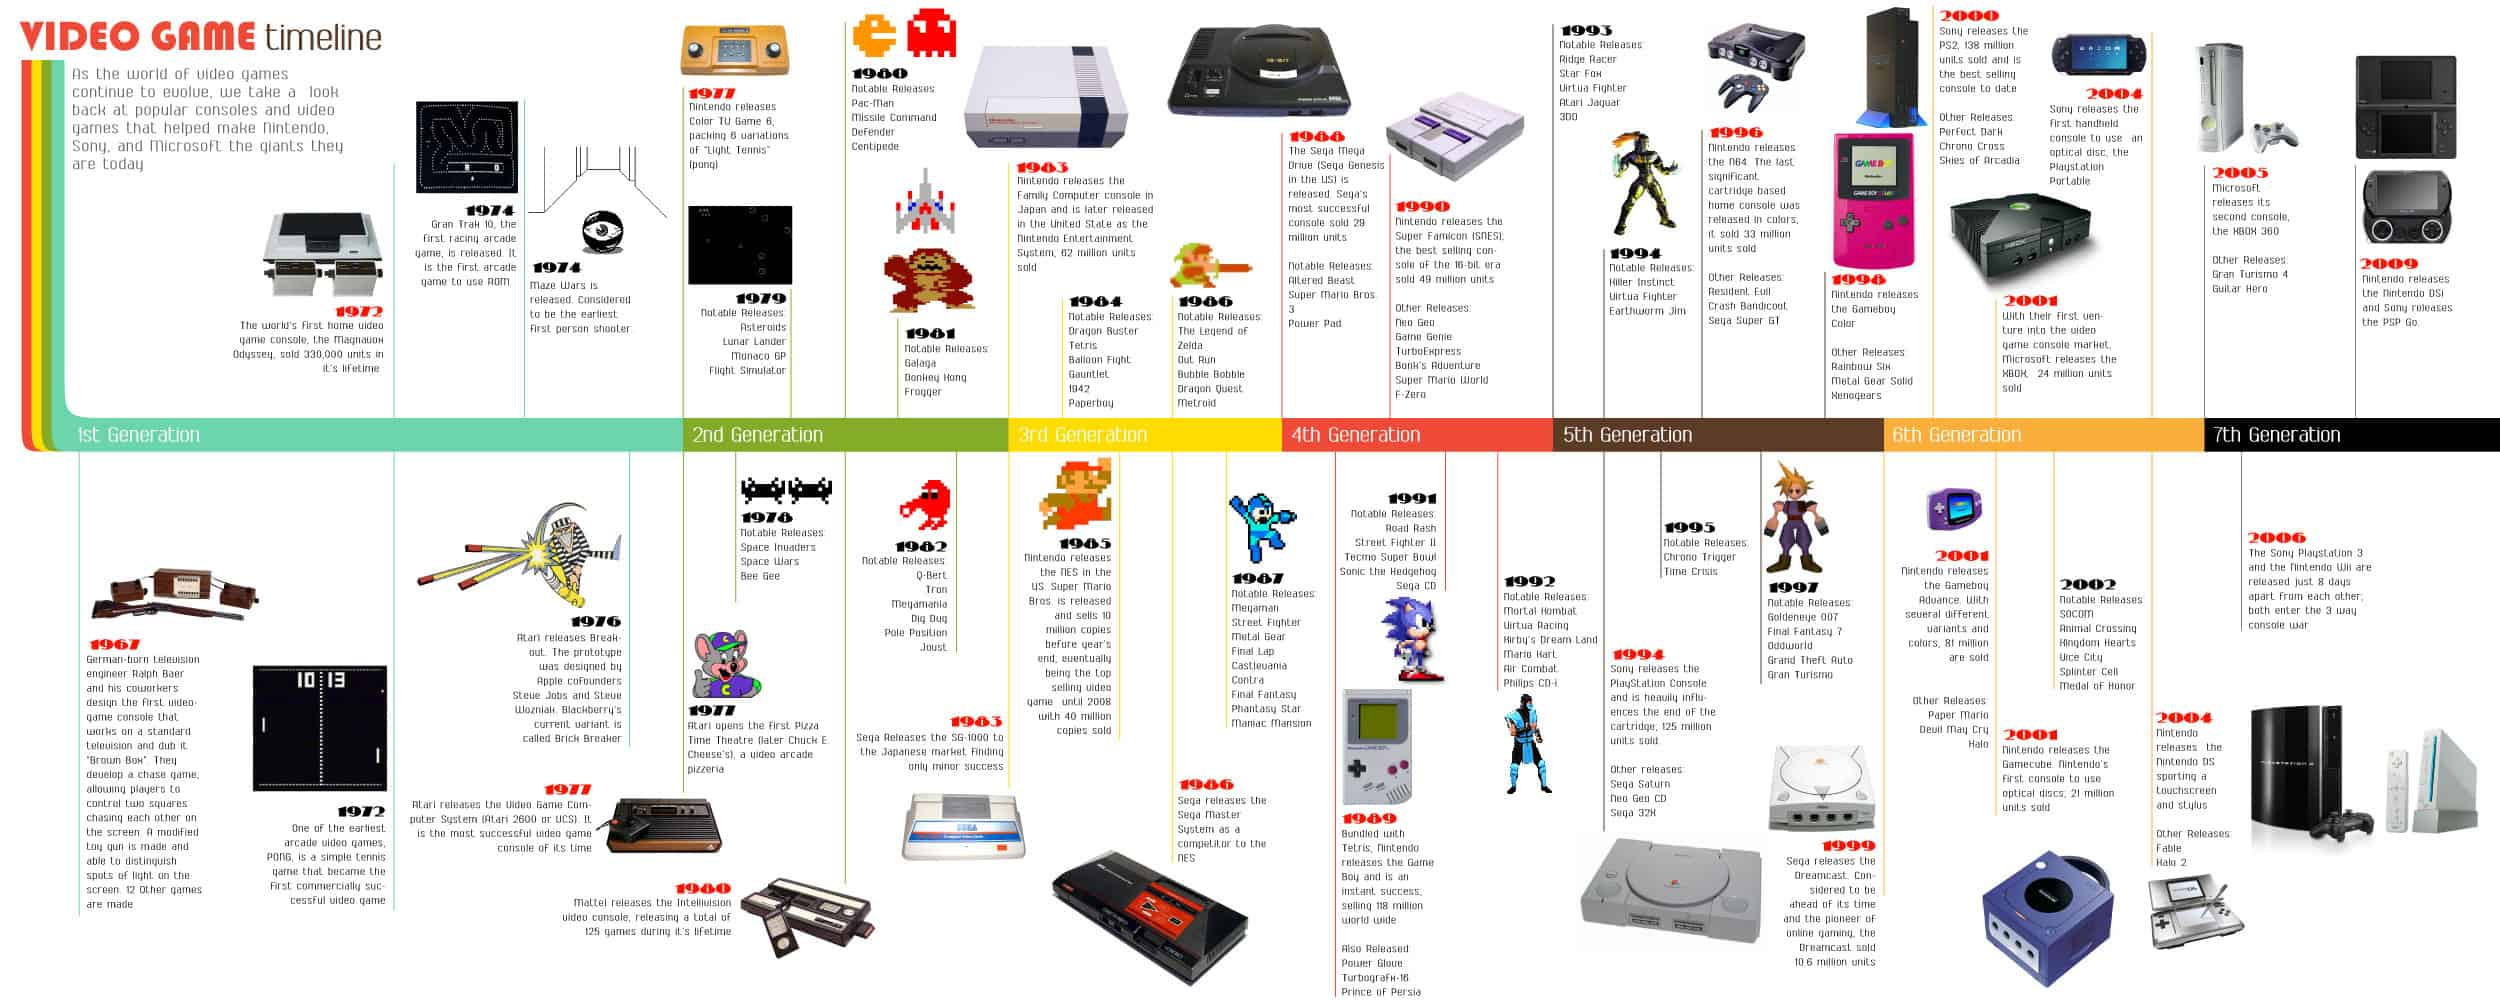 a picture of a video game timeline and history